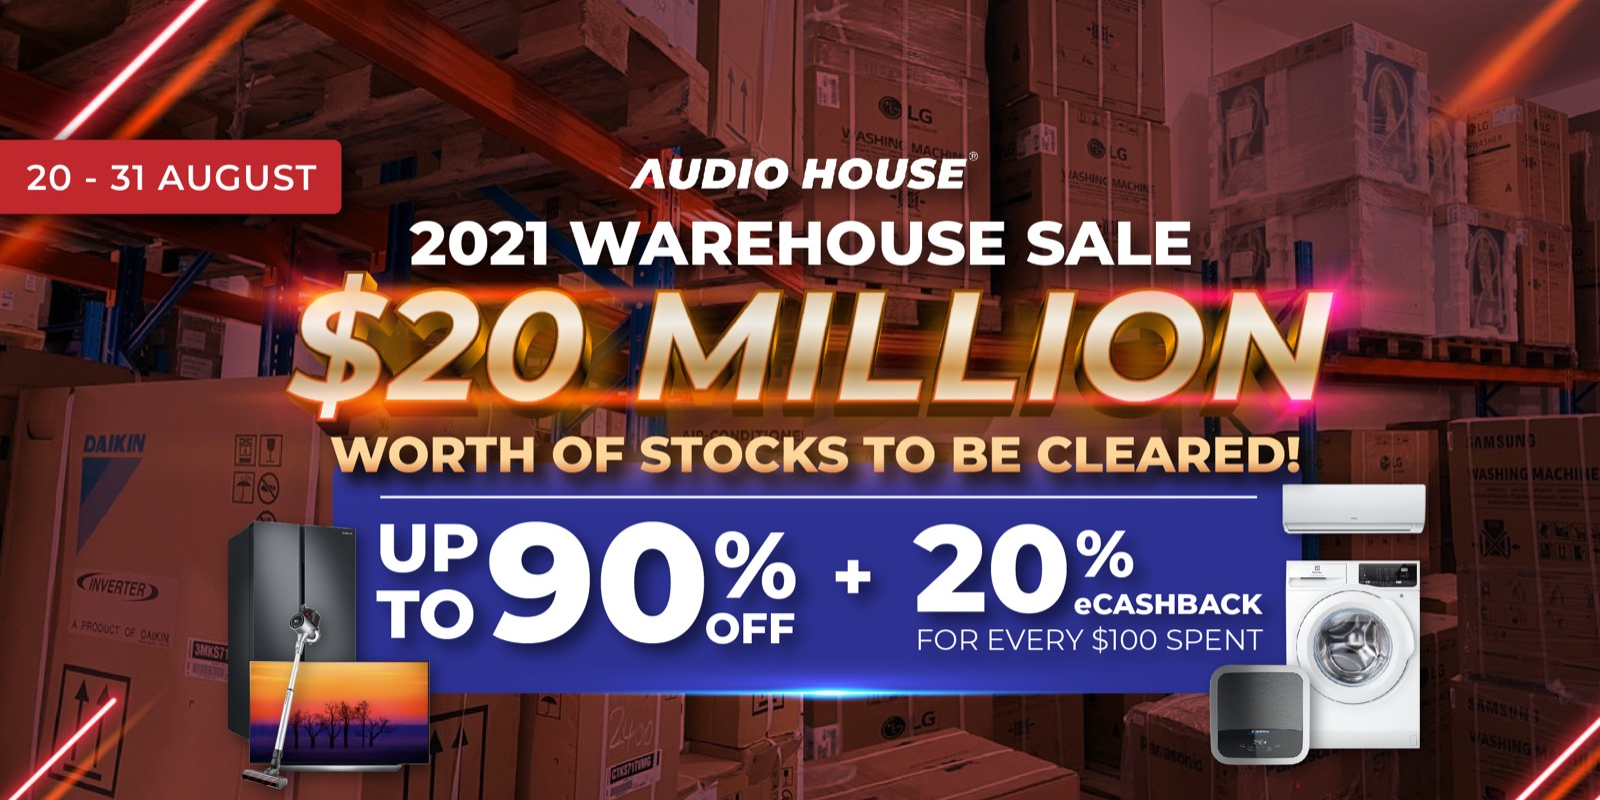 More than $20 million worth of Stocks to be Cleared at Audio House 2021 Warehouse Sale!